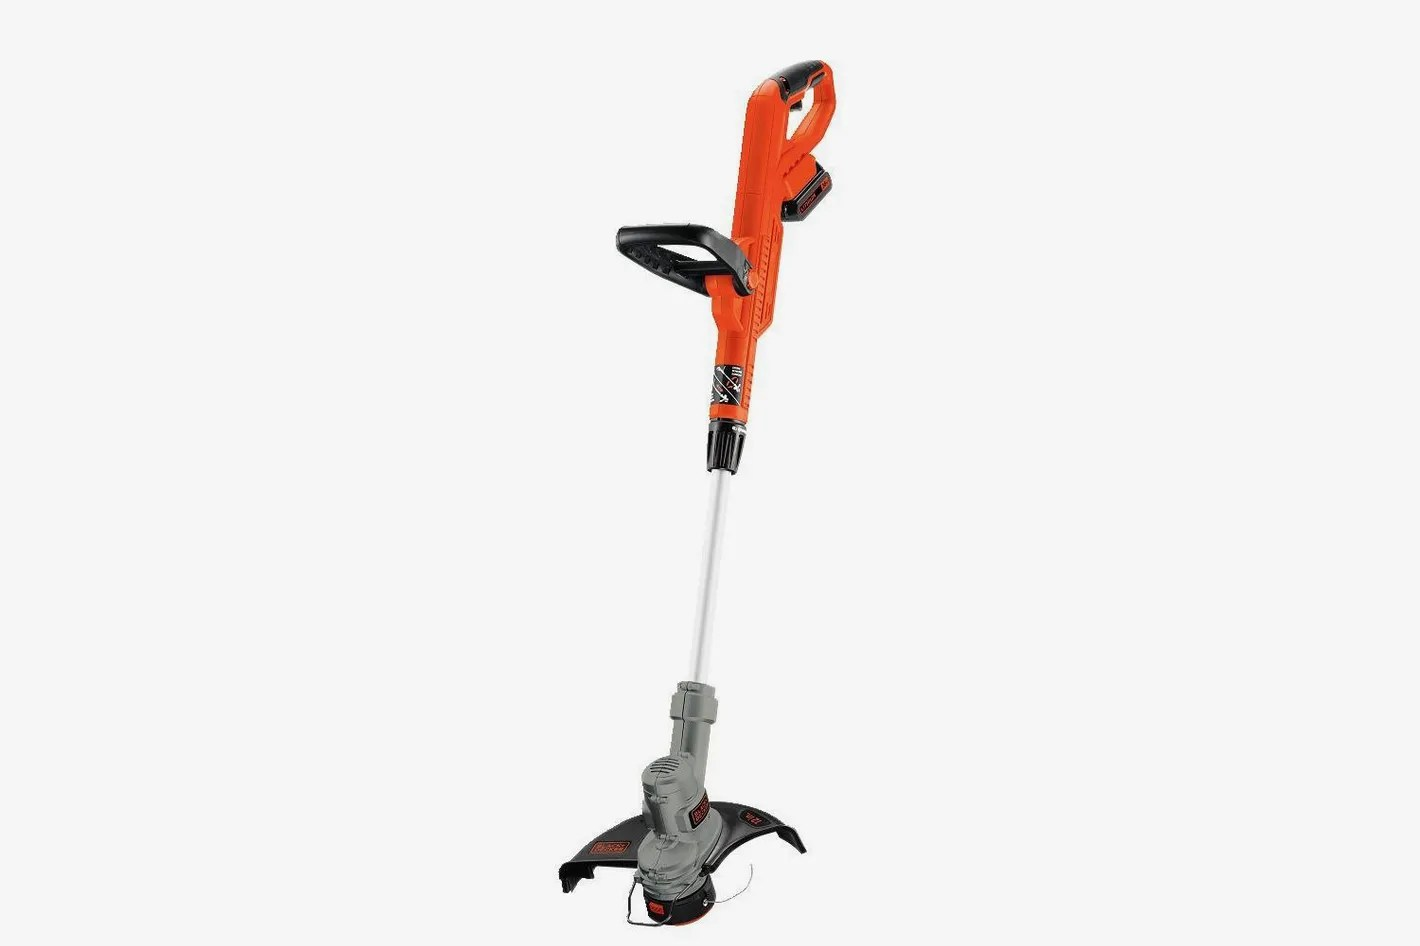 The 10 Best String Trimmers